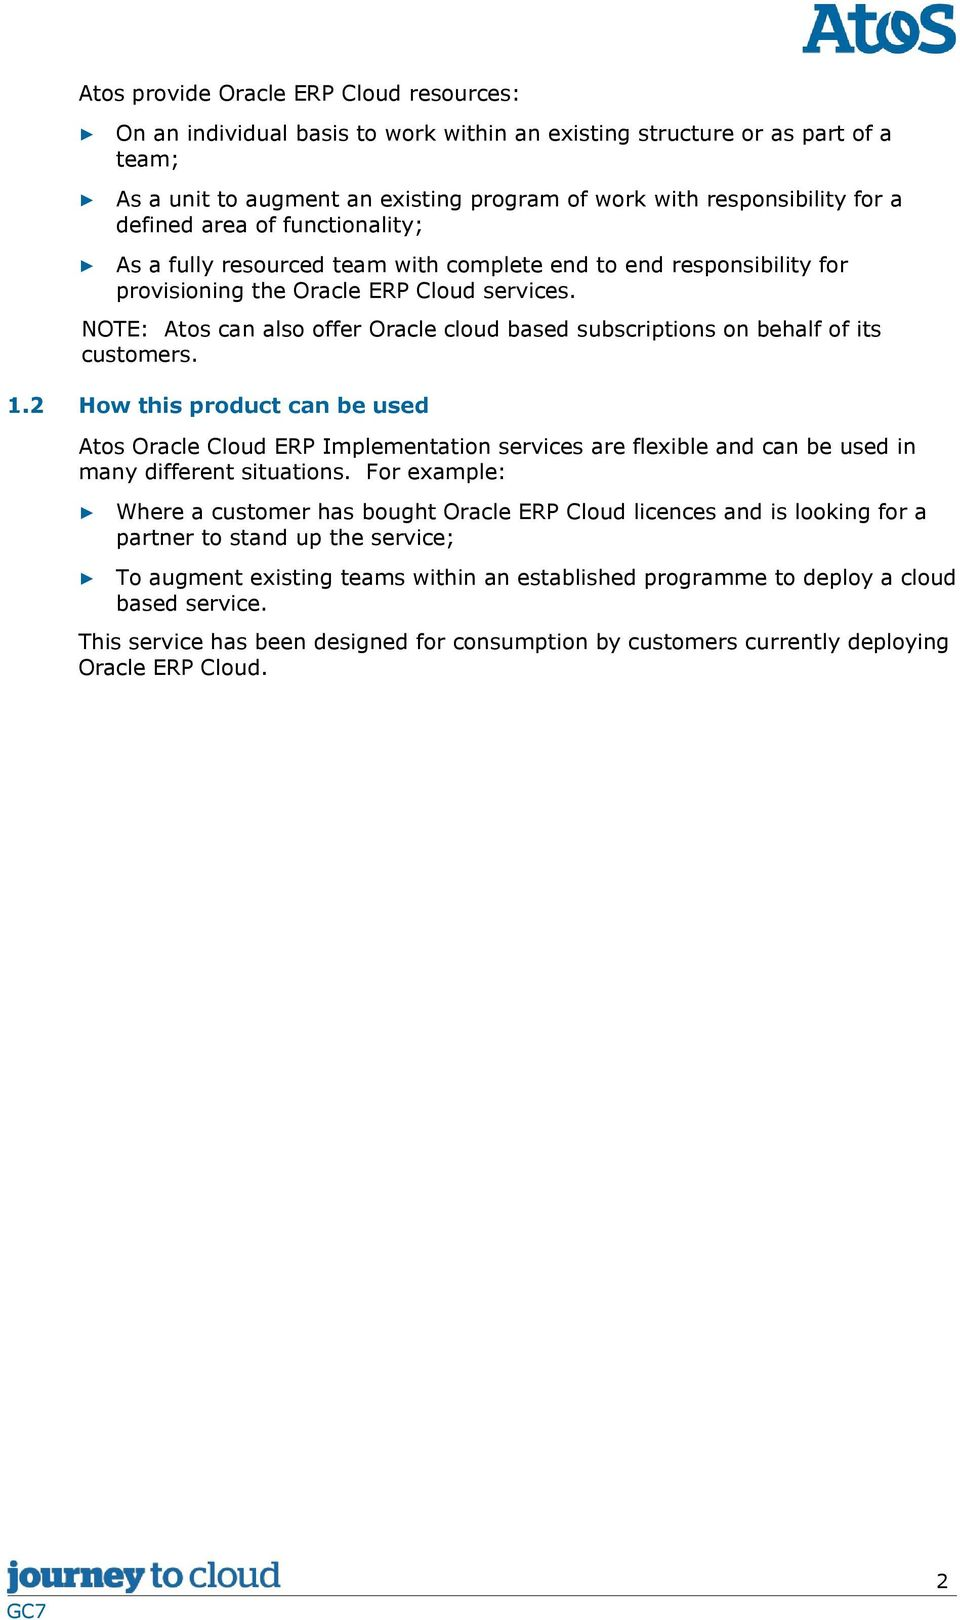 NOTE: Atos can also offer Oracle cloud based subscriptions on behalf of its customers. 1.